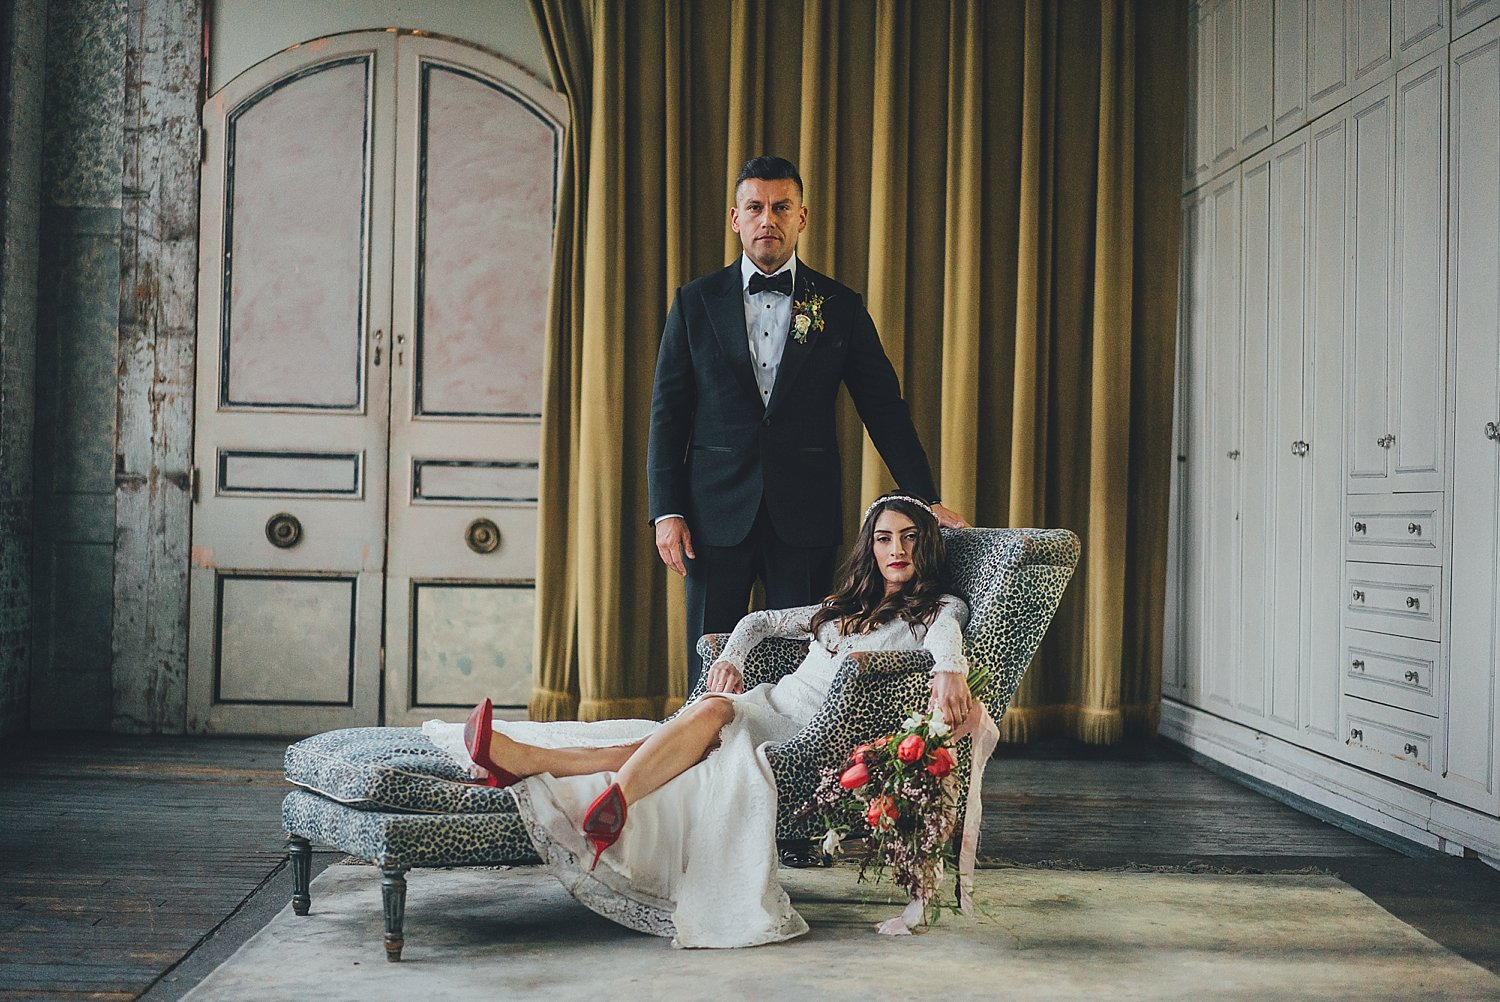 nyc-wedding-photography-nj-tri-state-cinematography-intothestory-by-moo-jae_0275.jpg